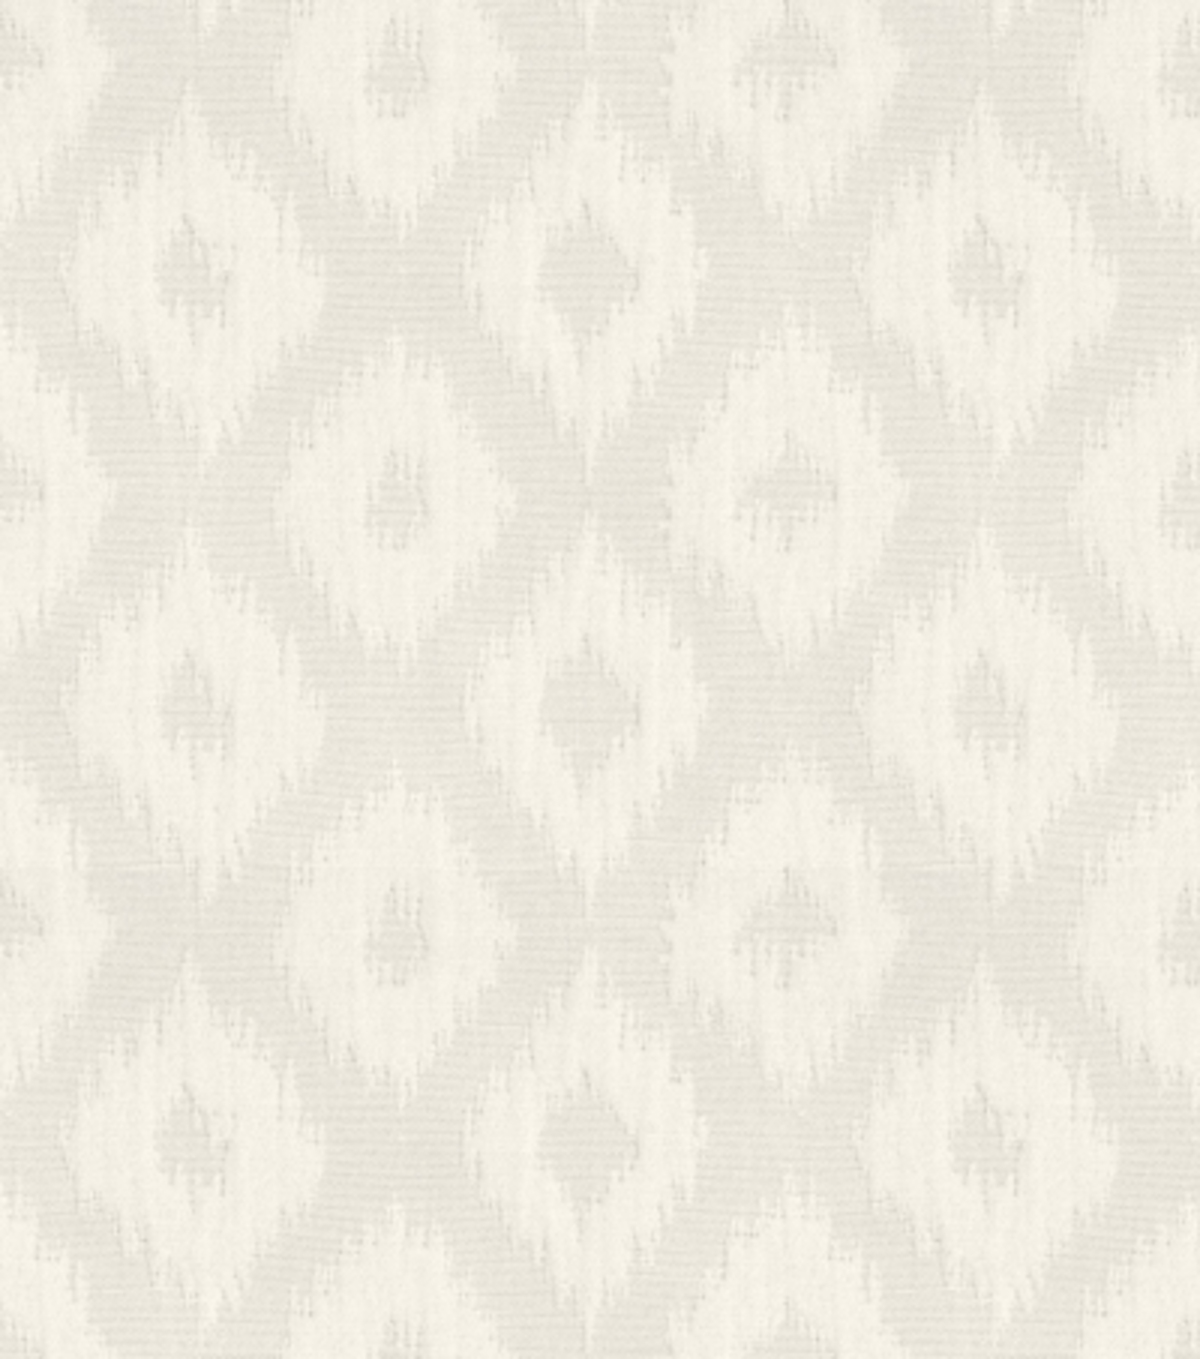 Home Decor 8\u0022x8\u0022 Fabric Swatch-Dena Avan Pearl